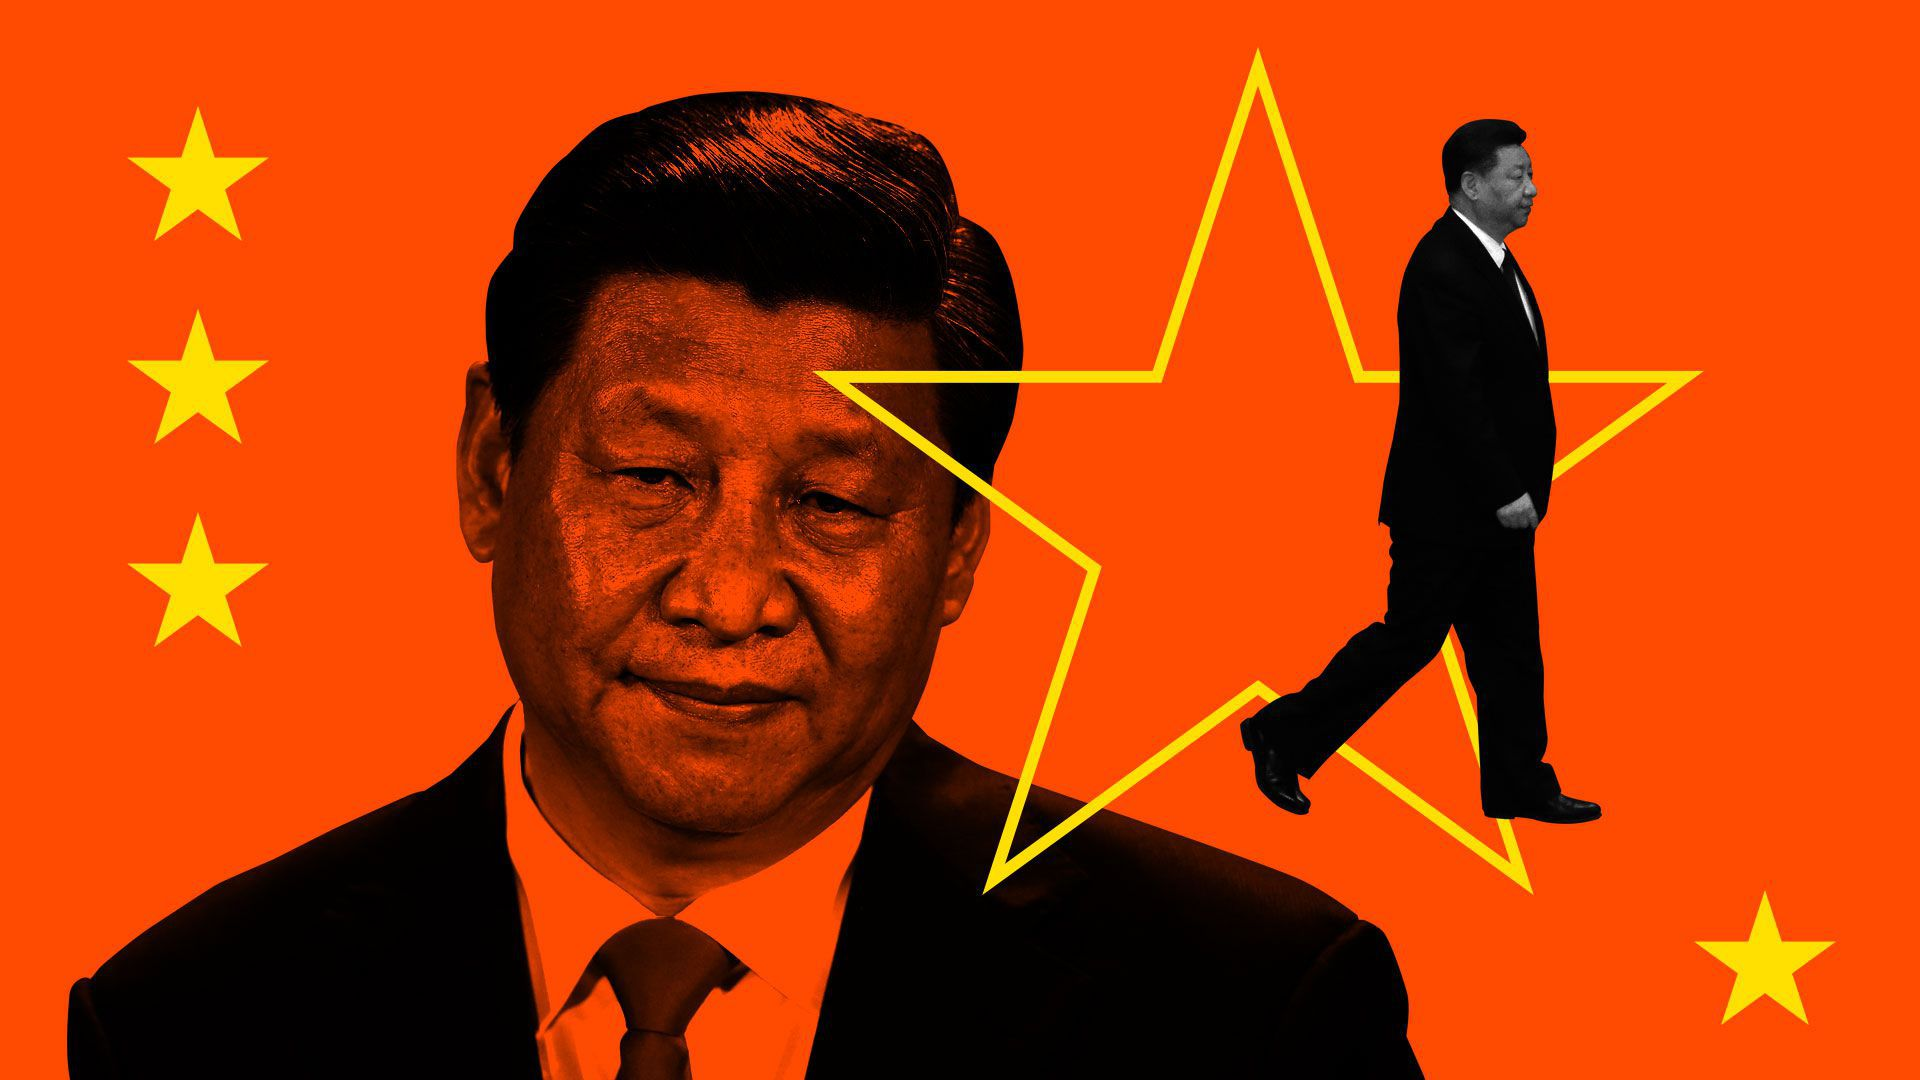 Illustration of Chinese President Xi Jinping with a close headshot and also a photo of him walking away superimposed on China flag